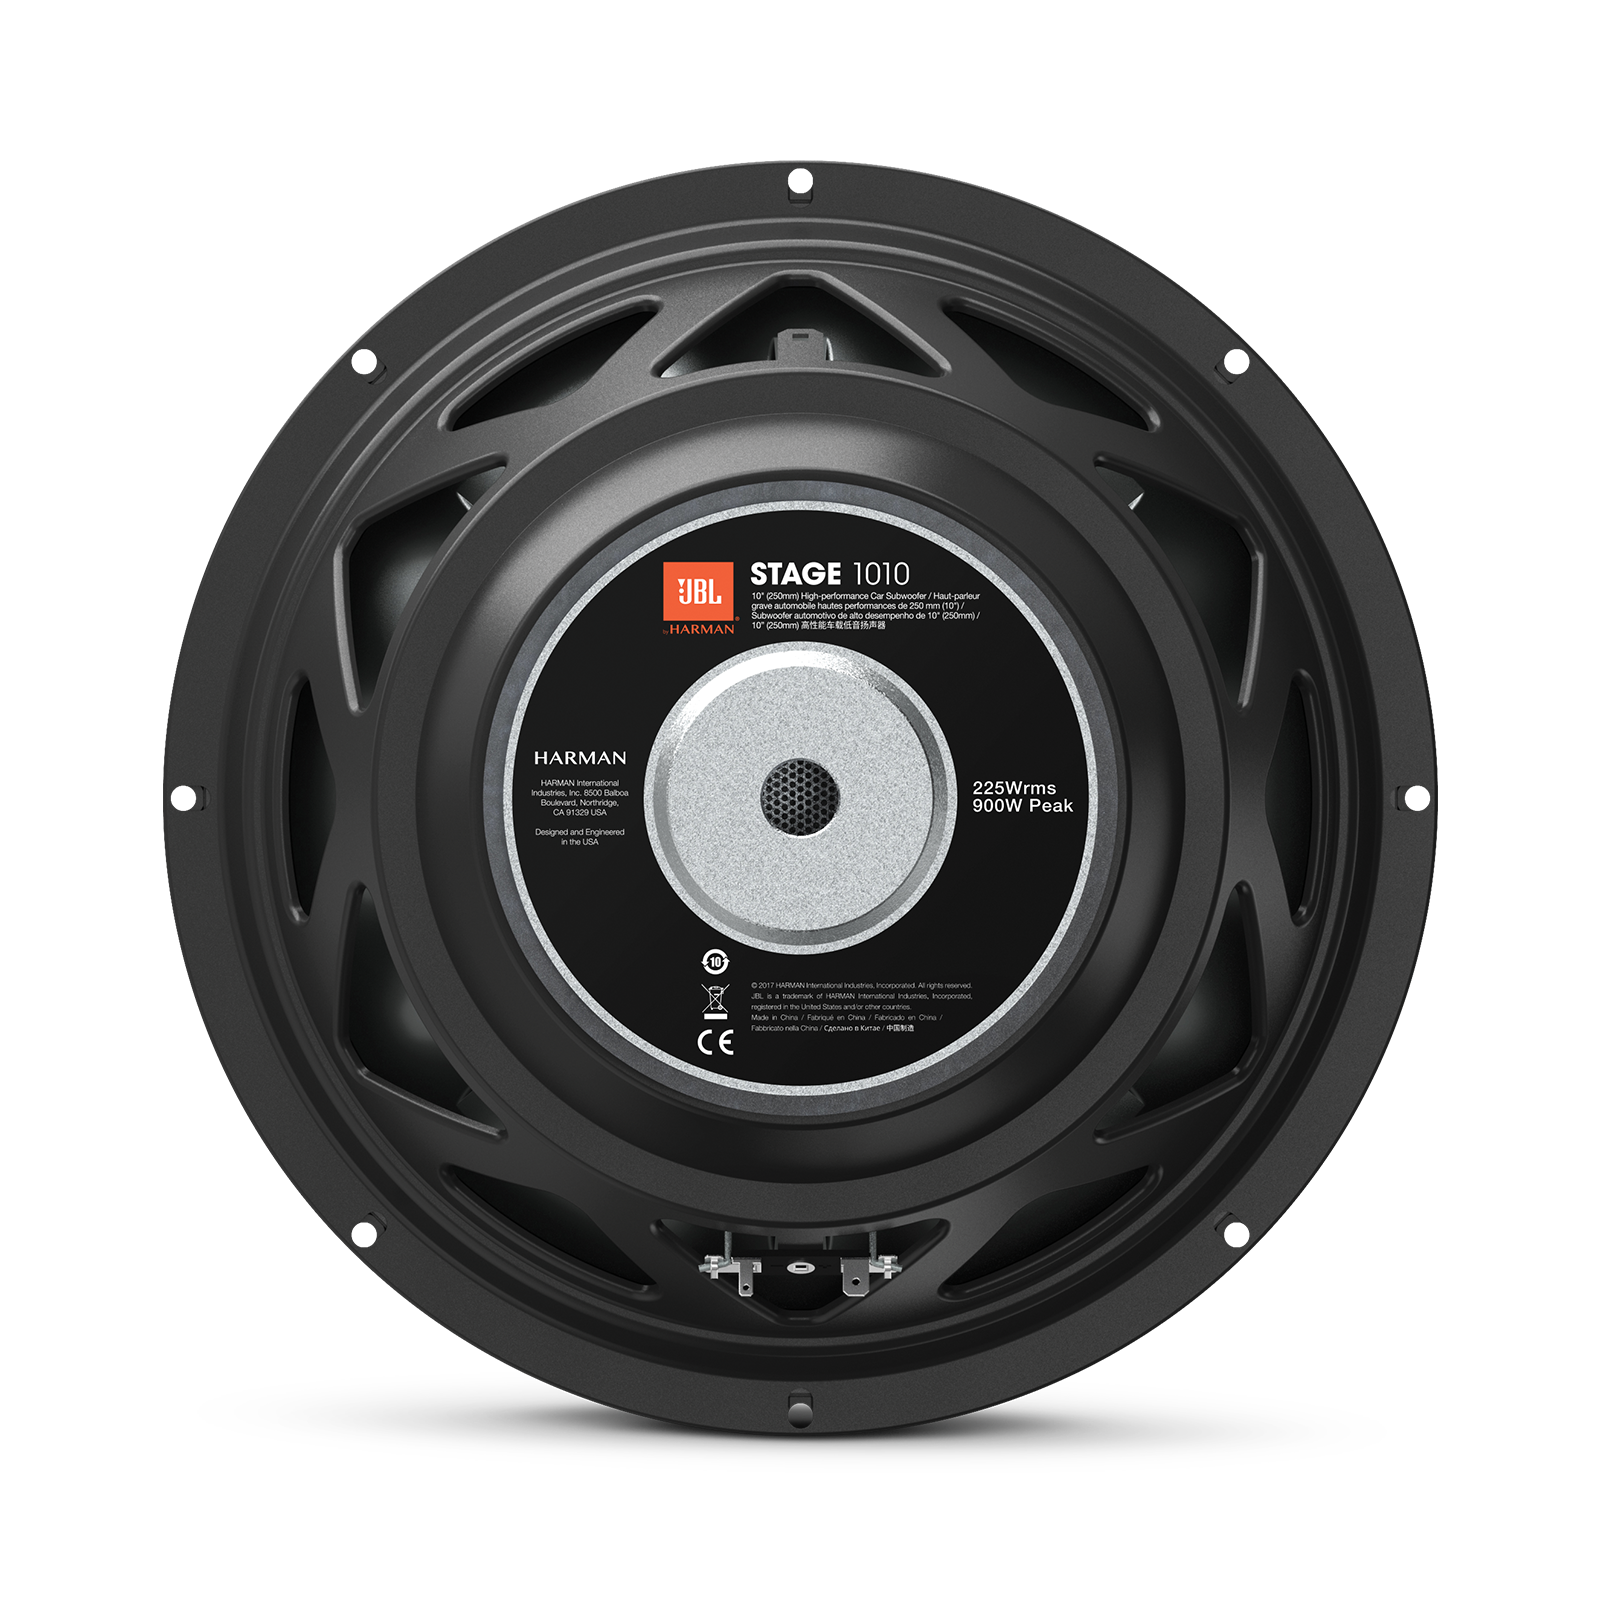 "JBL Stage 1010 Subwoofer - Black - 10"" (250mm) woofer with 225 RMS and 900W peak power handling. - Back"